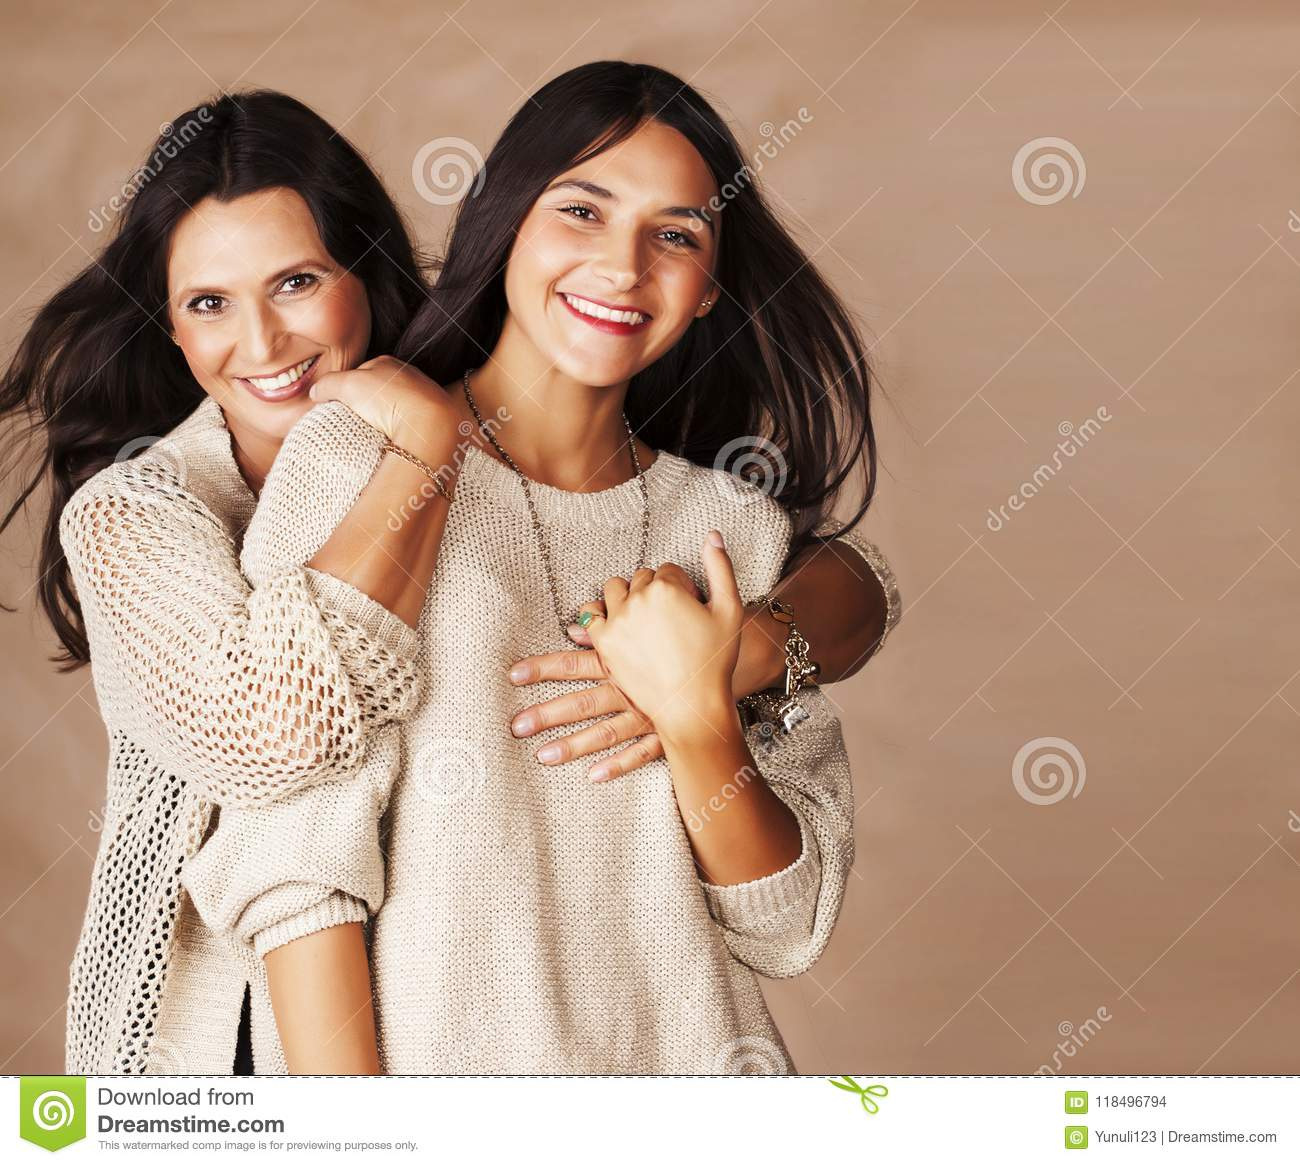 Cute pretty teen daughter with mature mothr hugging, fashion style brunette